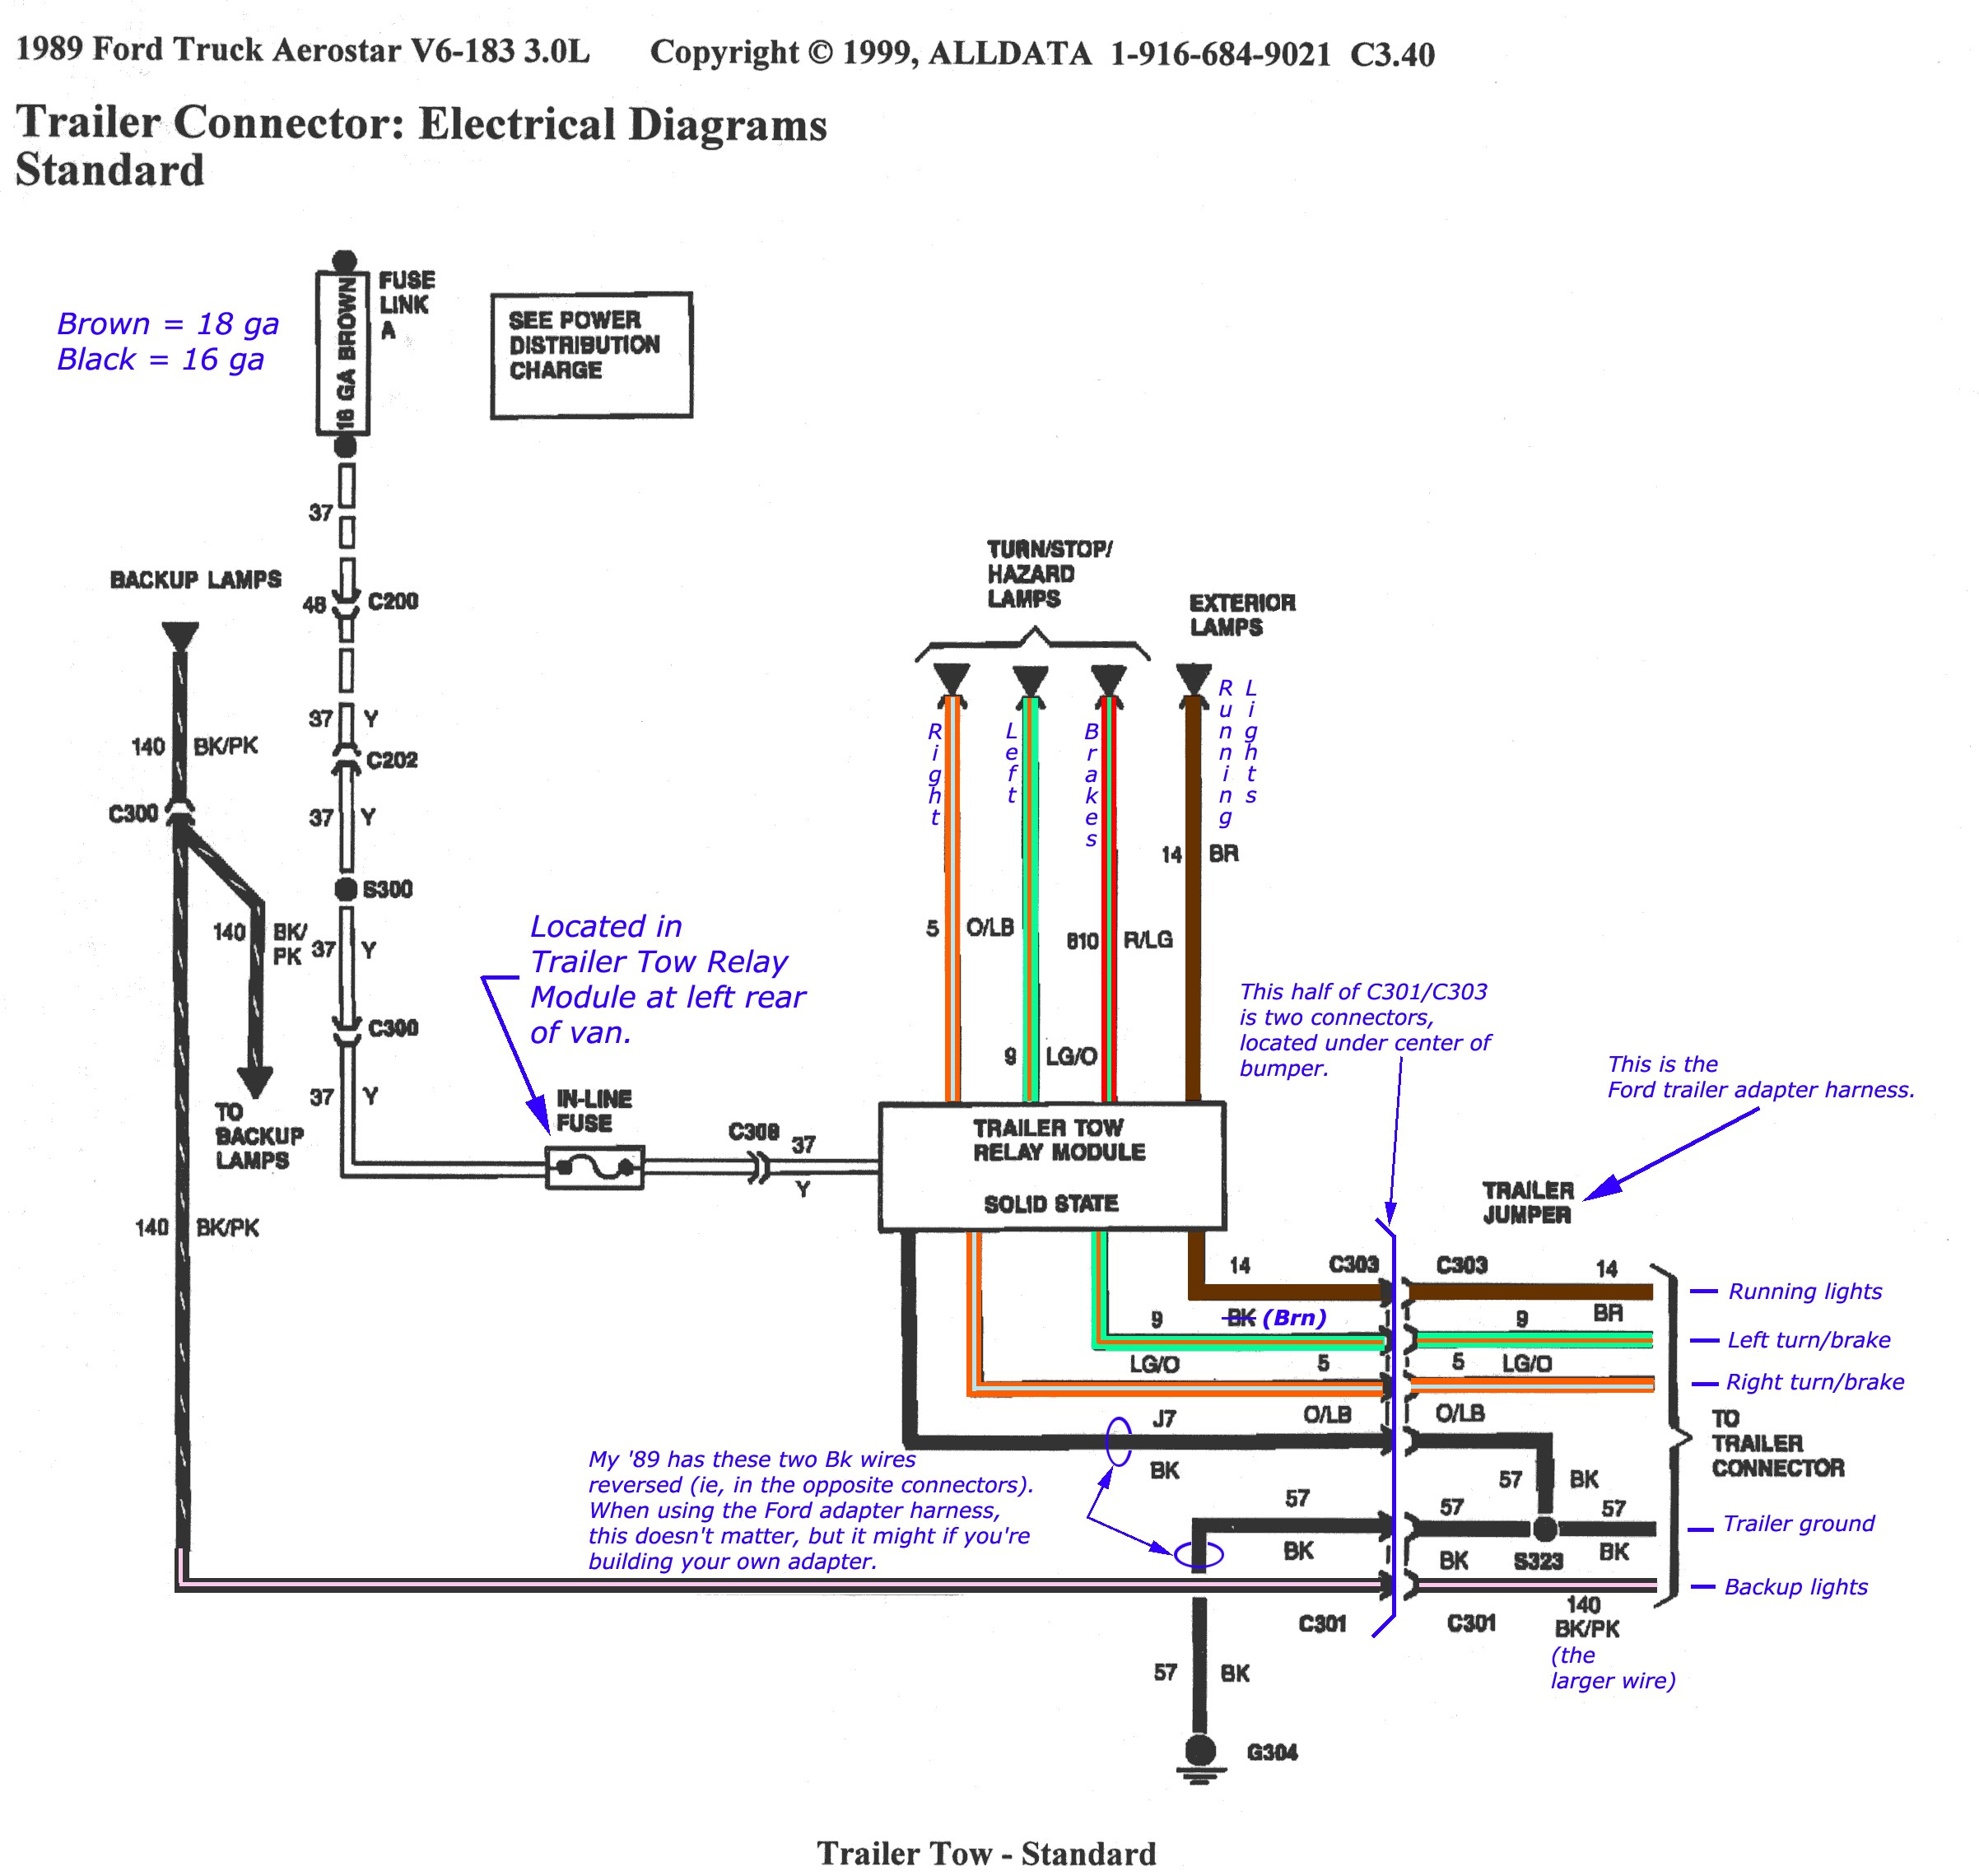 Kentucky Trailer Wiring Diagram | Wiring Library - Kentucky Trailer Wiring Diagram